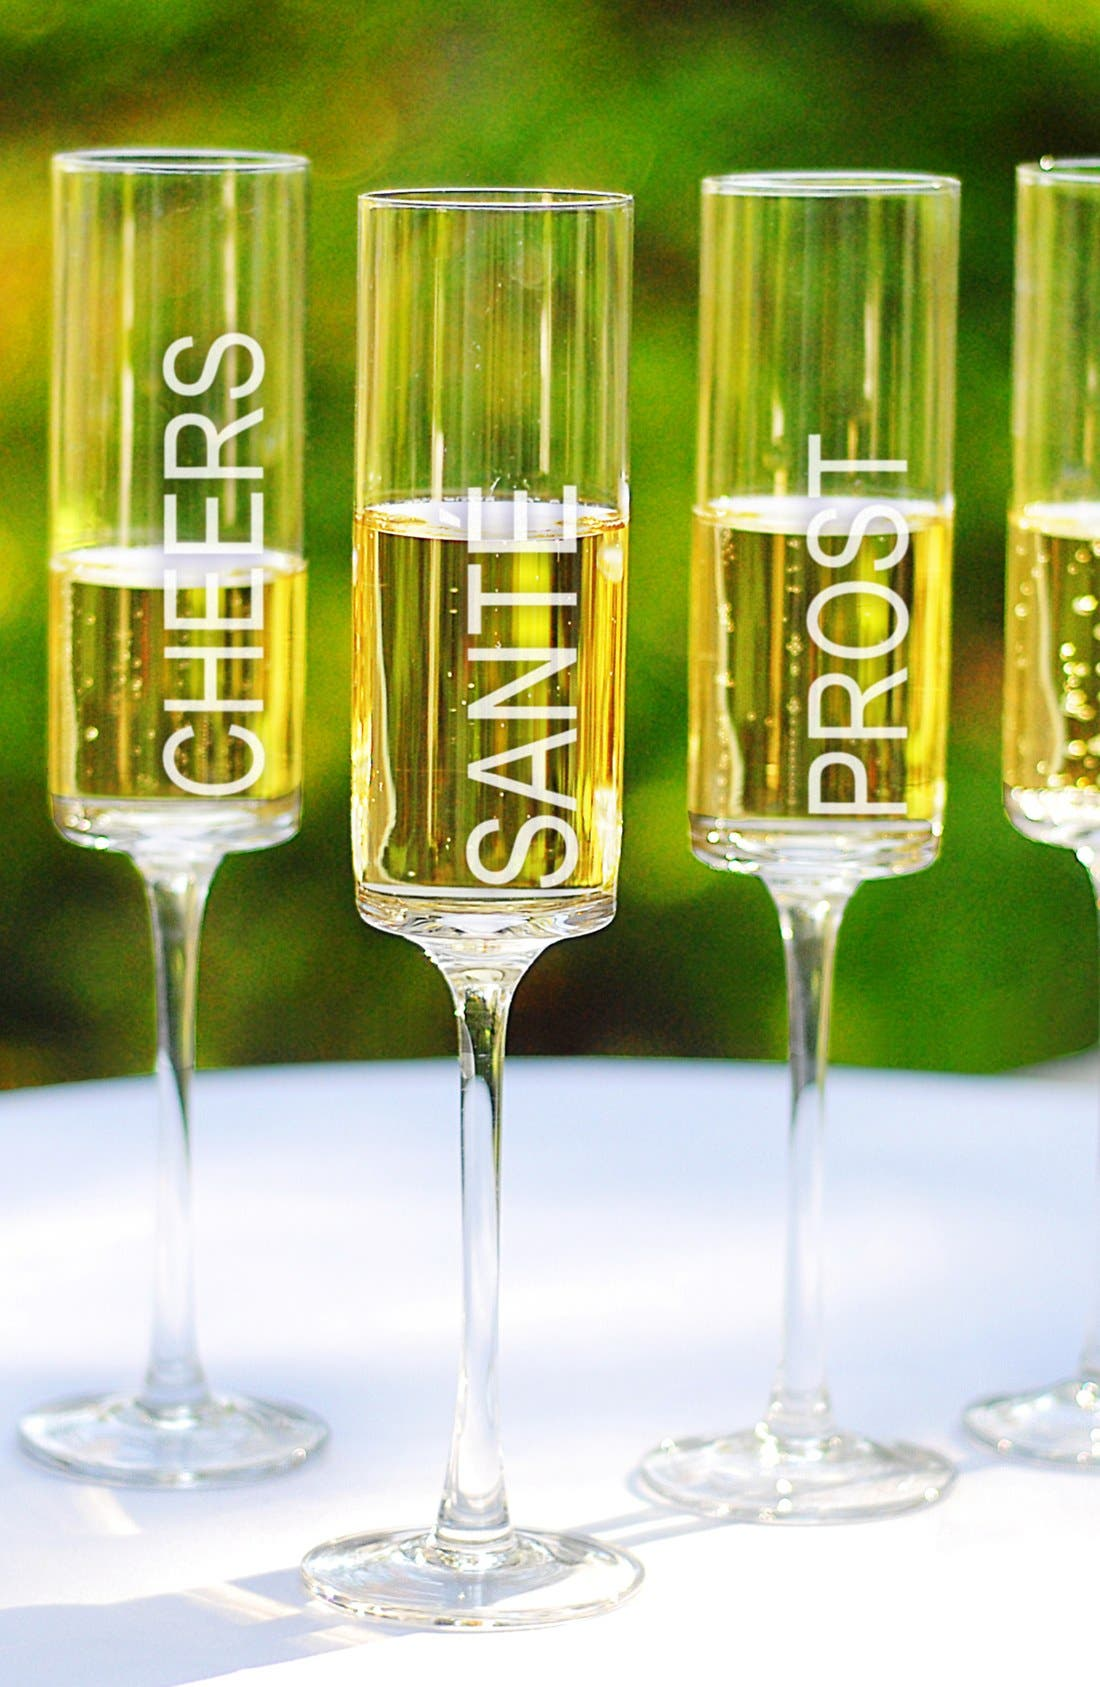 'Cheers!' Contemporary Champagne Flutes,                             Main thumbnail 1, color,                             No Color